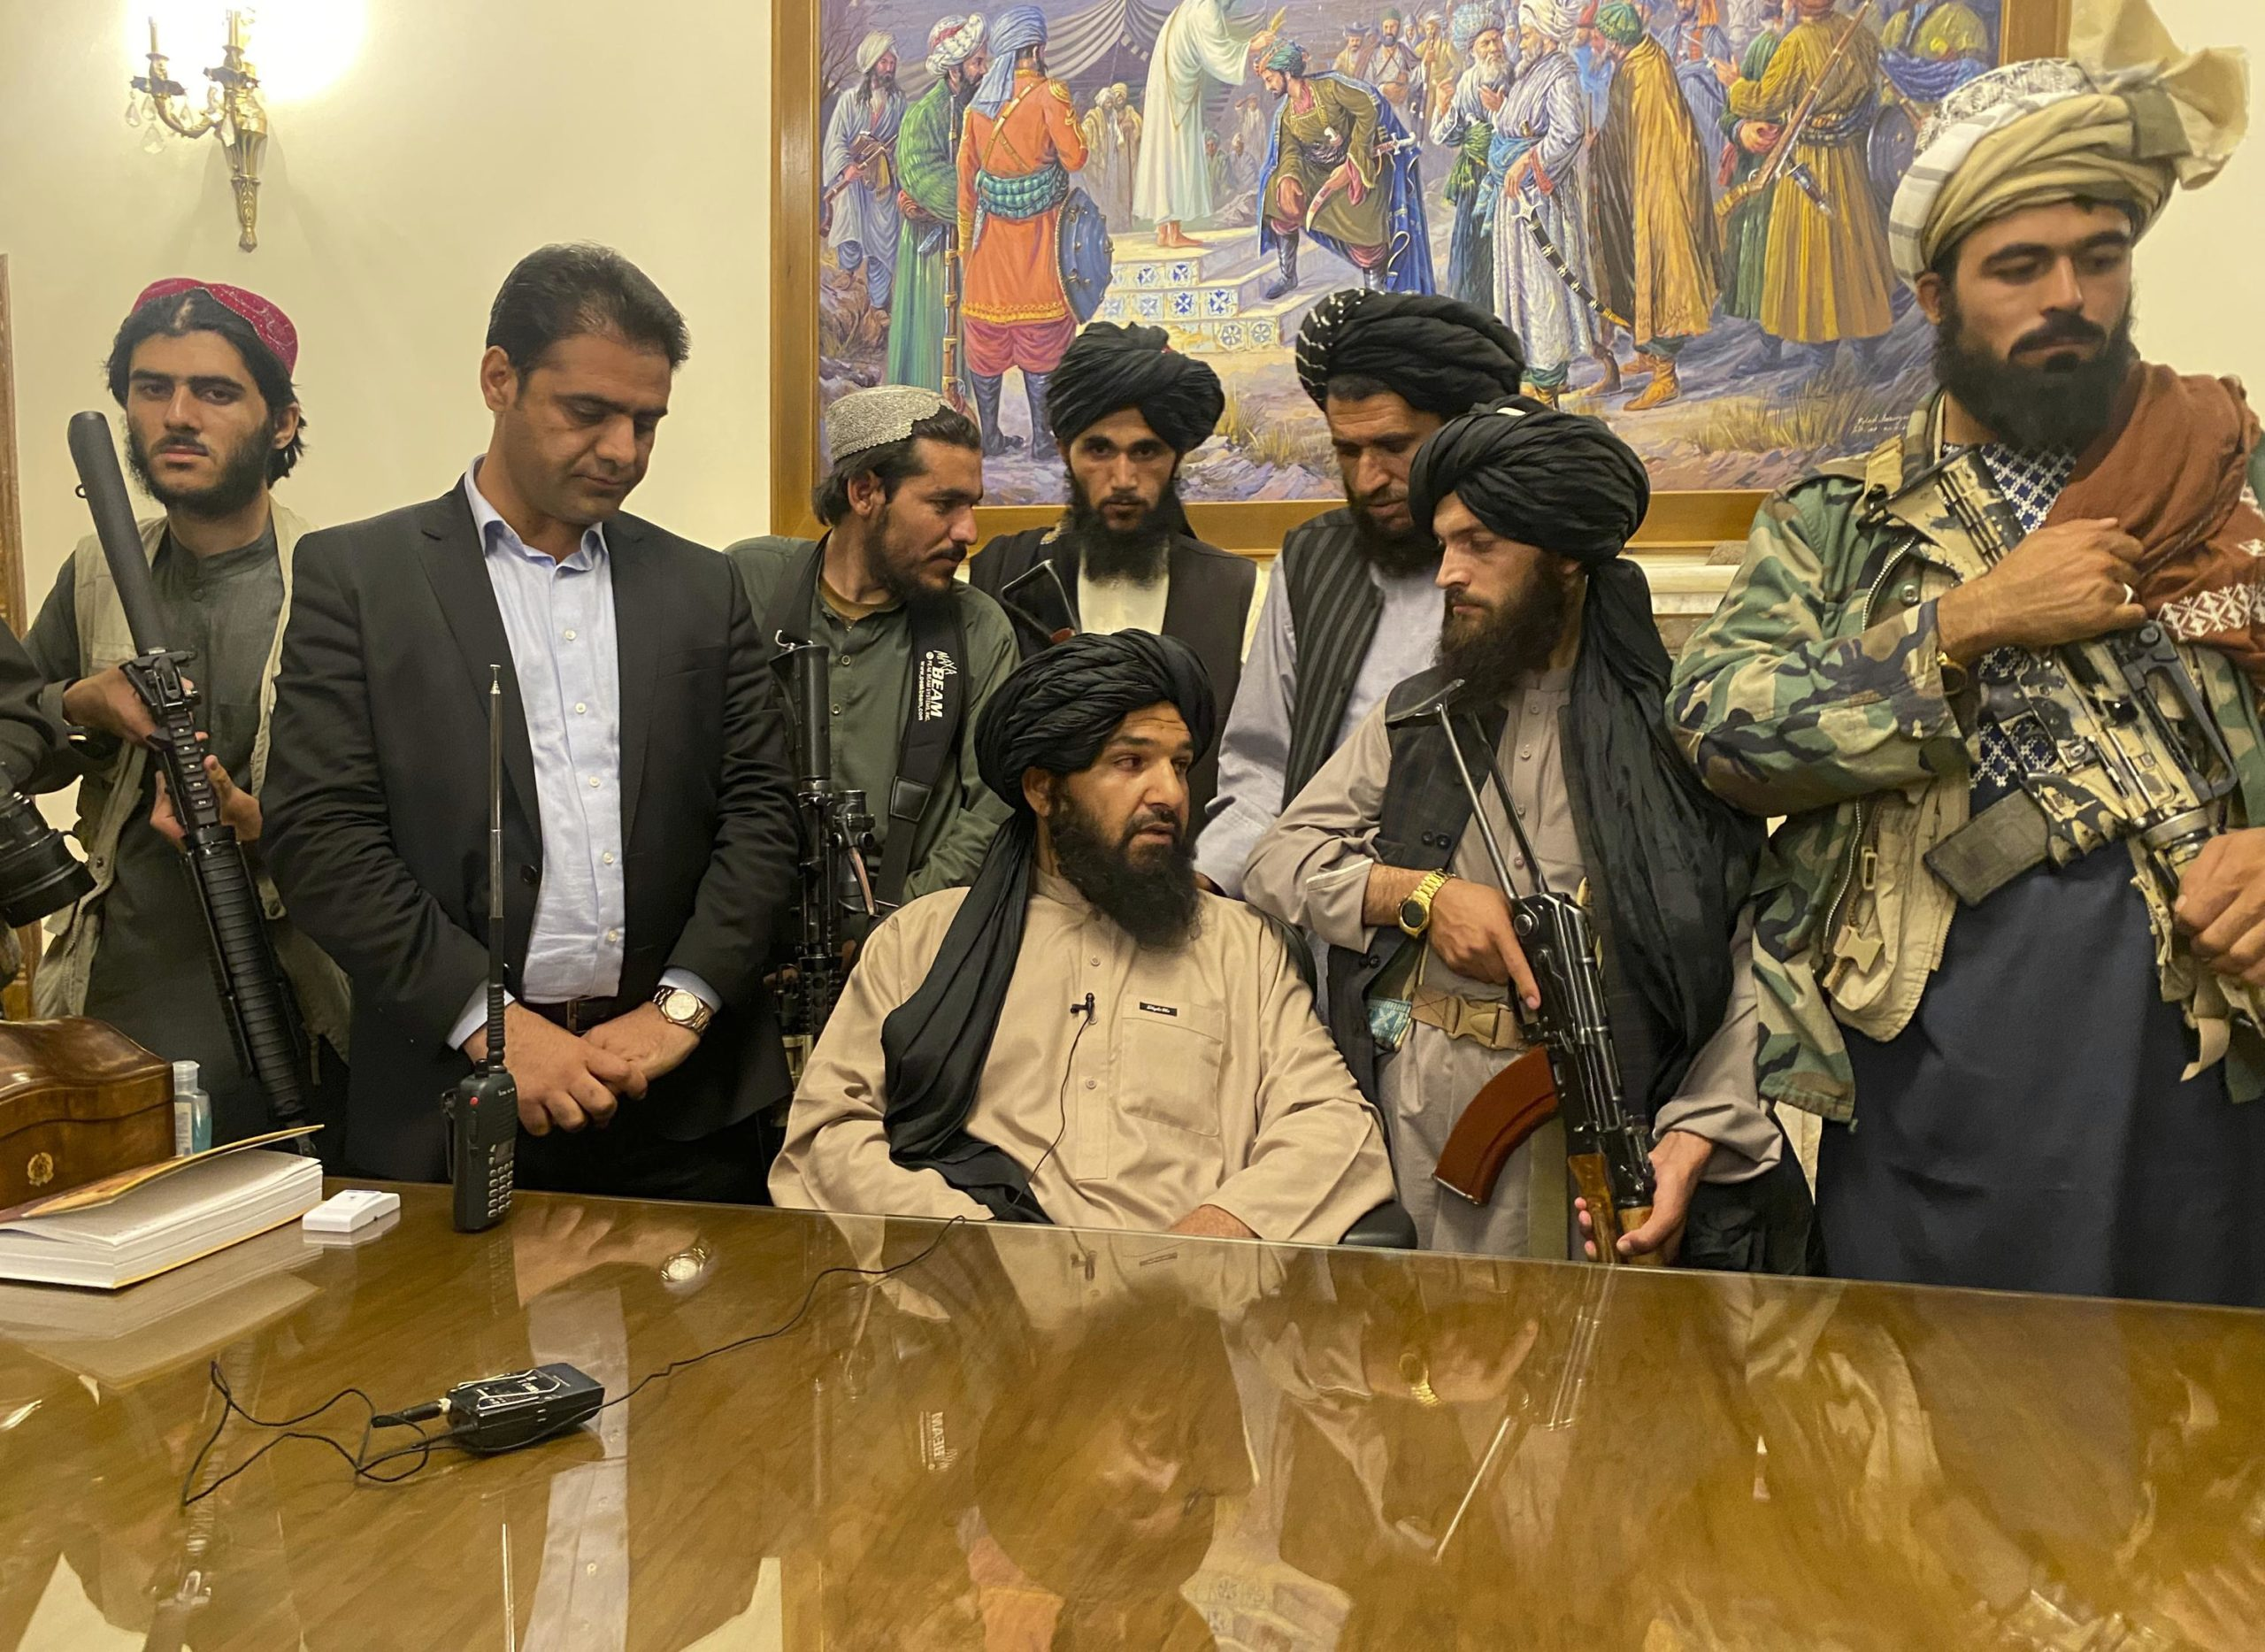 The Taliban Story: Beginning of the US misadventure: laying the ground for revival of Taliban (Part 20)